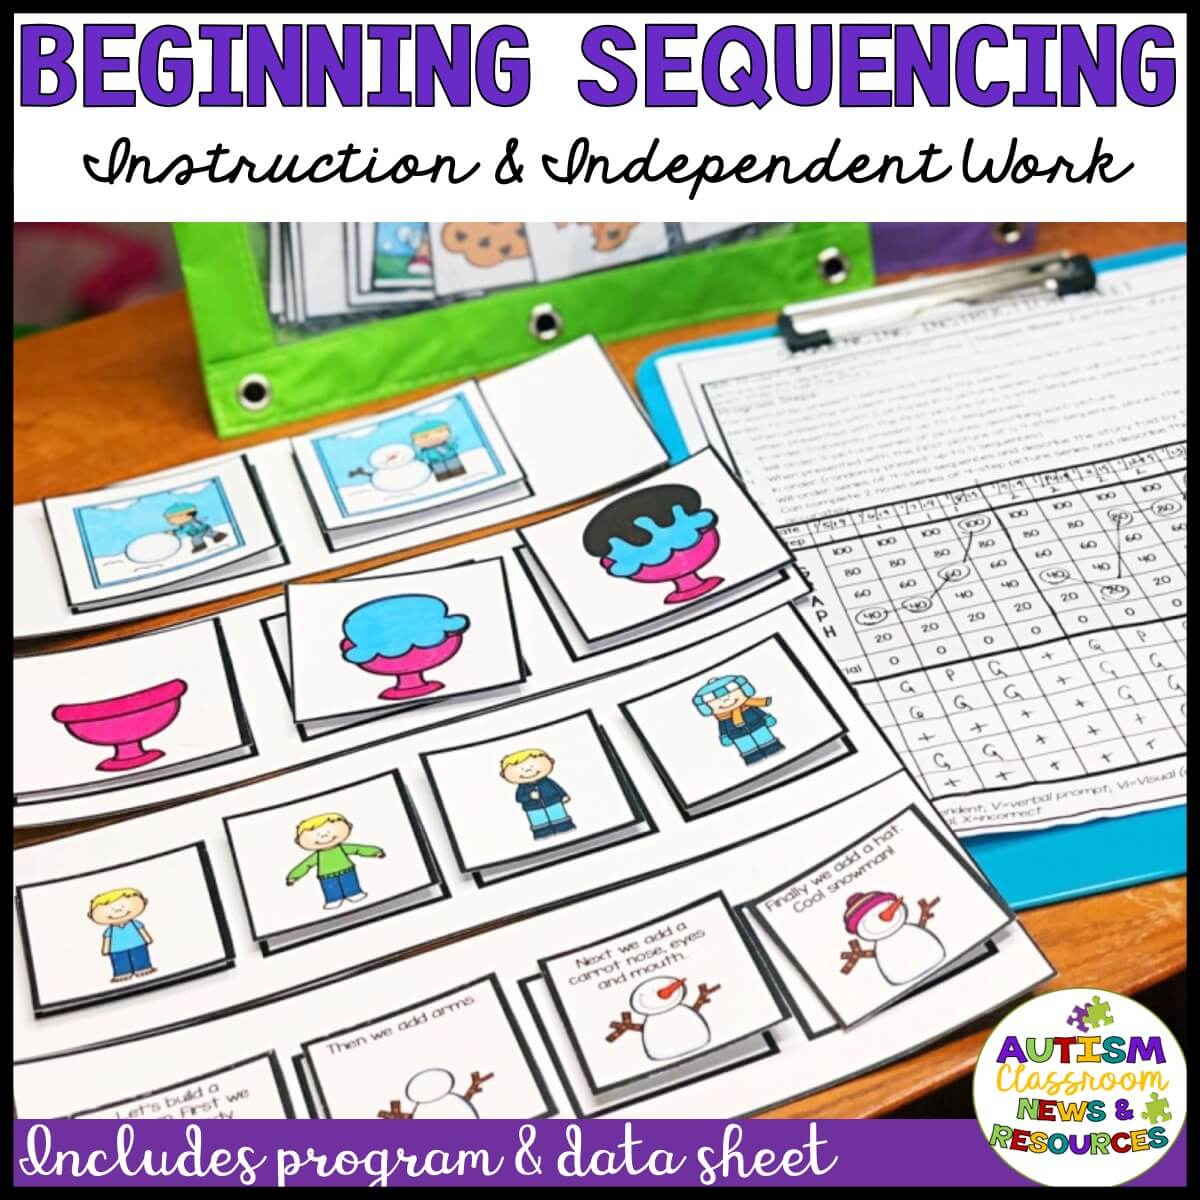 The beginning sequencing kit has everything you need to take your students from learning first-next to 4-picture sequences with text.  Includes a data sheet and video tutorial as well as templates for each set.